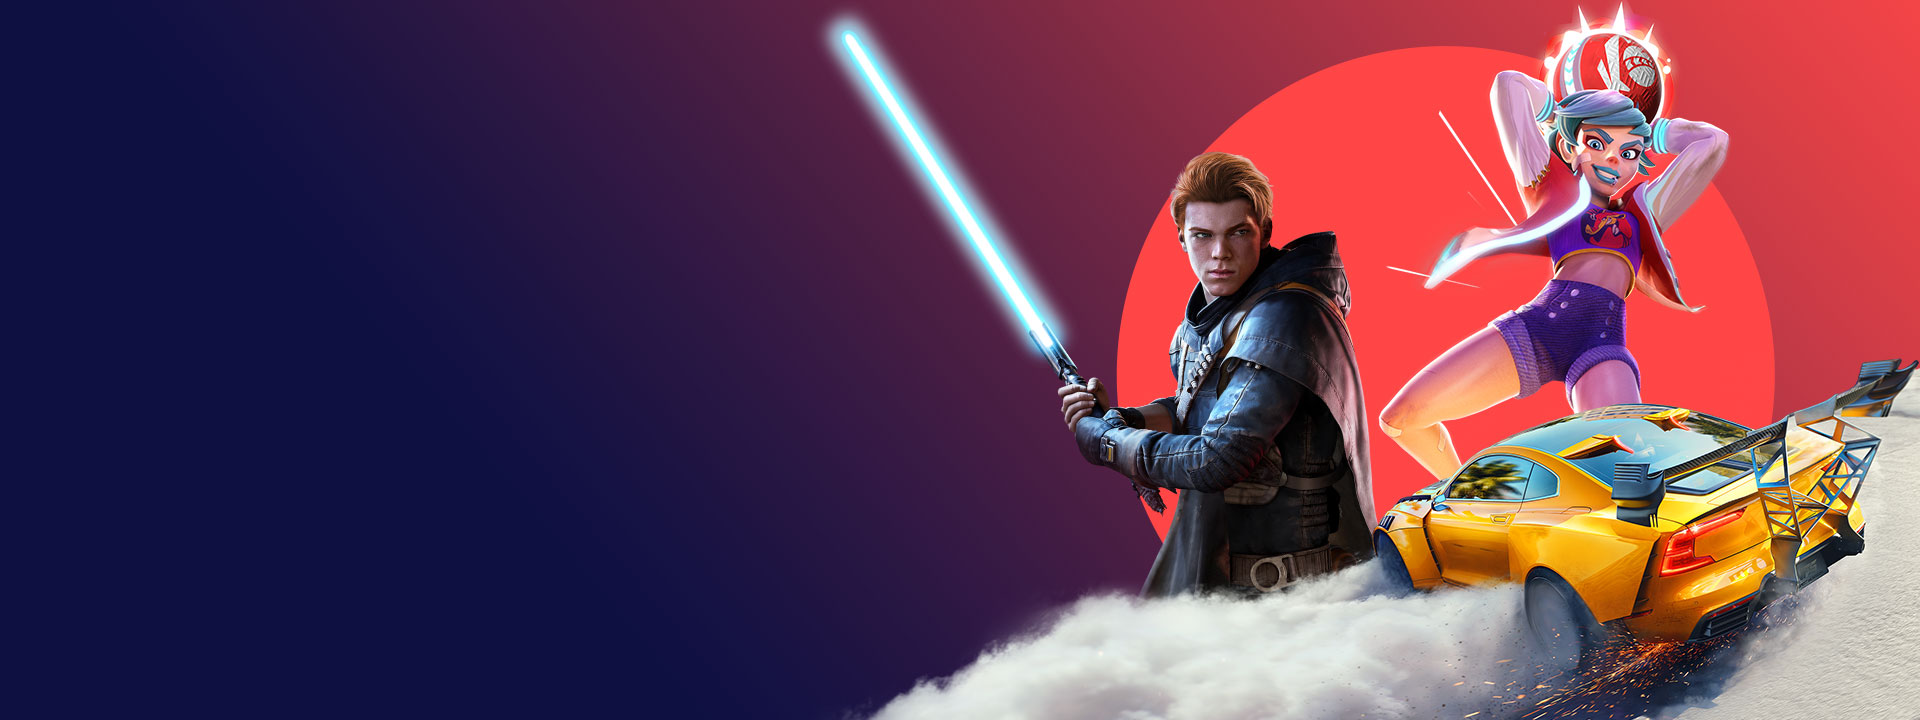 Artwork from EA games included with Xbox Game Pass, including Star Wars Jedi: Fallen Order, Knockout City, and Need for Speed Heat.